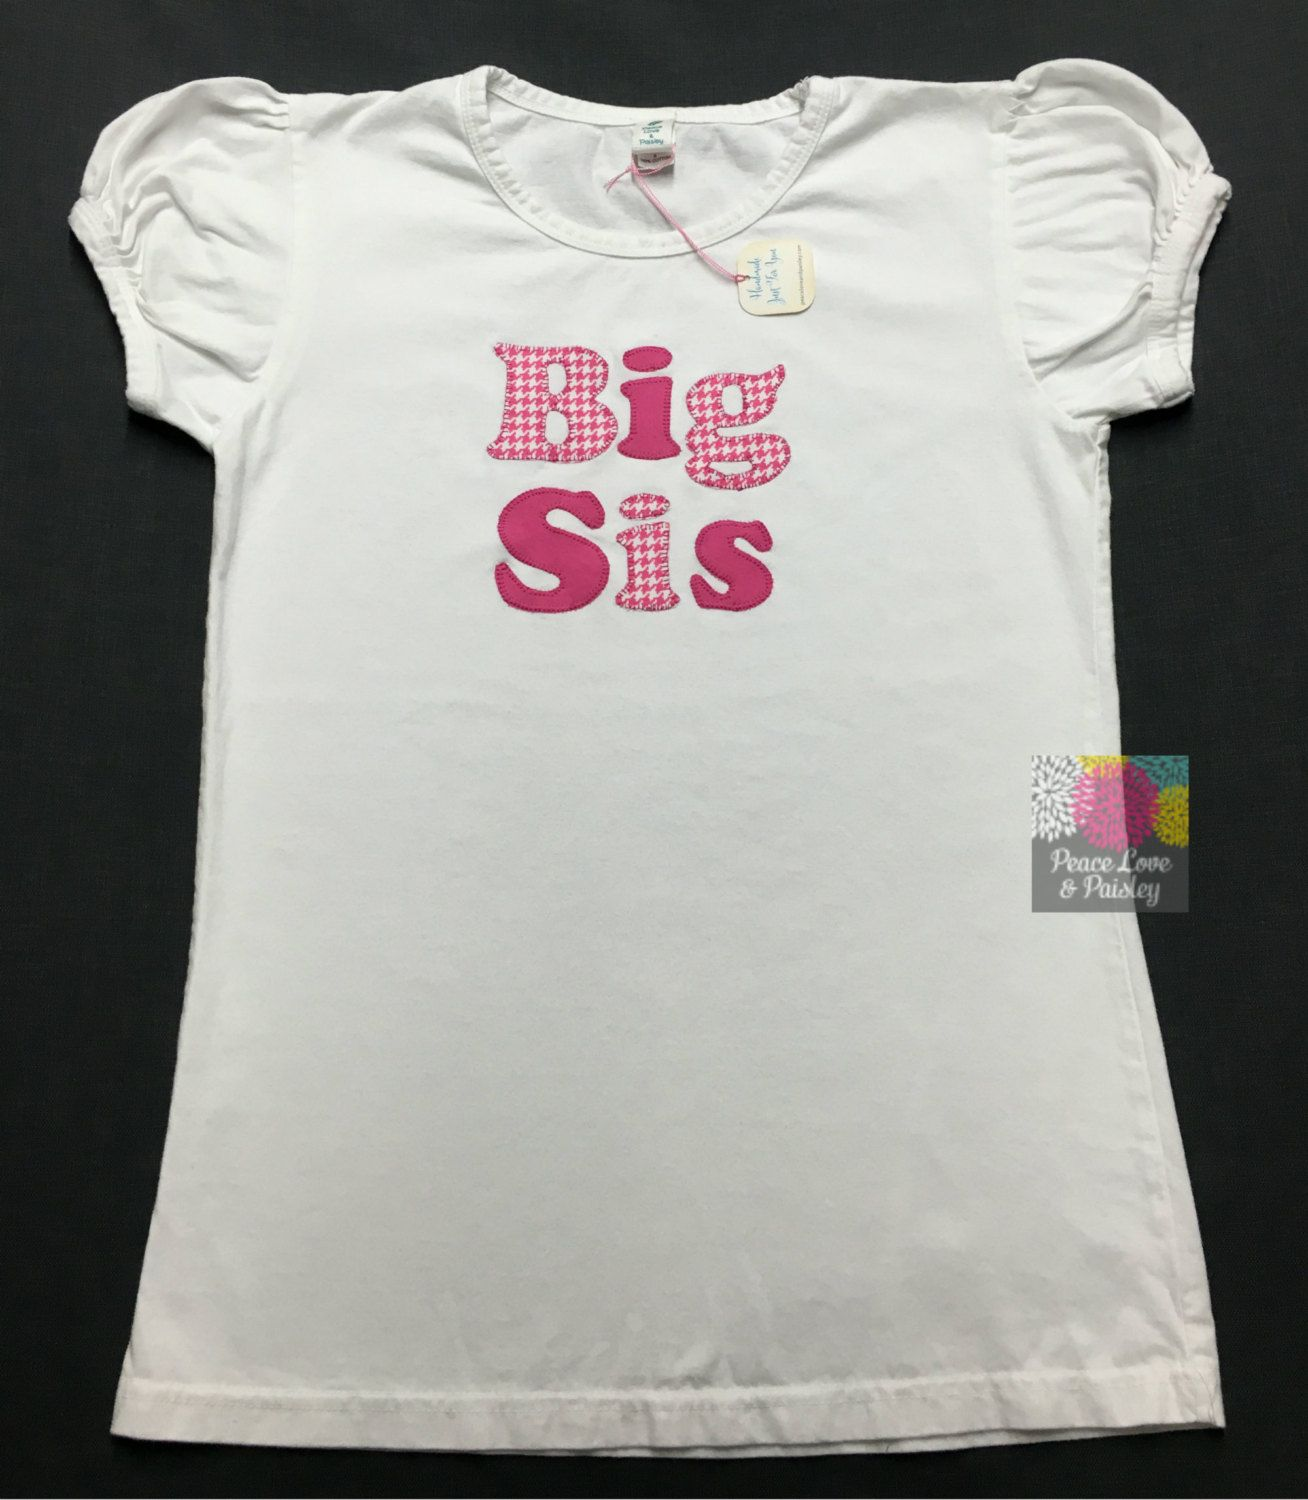 Personalized Big Sister Shirt, Sibling Shirt, Big Sis Shirt, Baby Shower Gift, New Baby Gift, Monogrammed Big Sister Shirt, Houndstooth by PeaceLoveandPaisley on Etsy